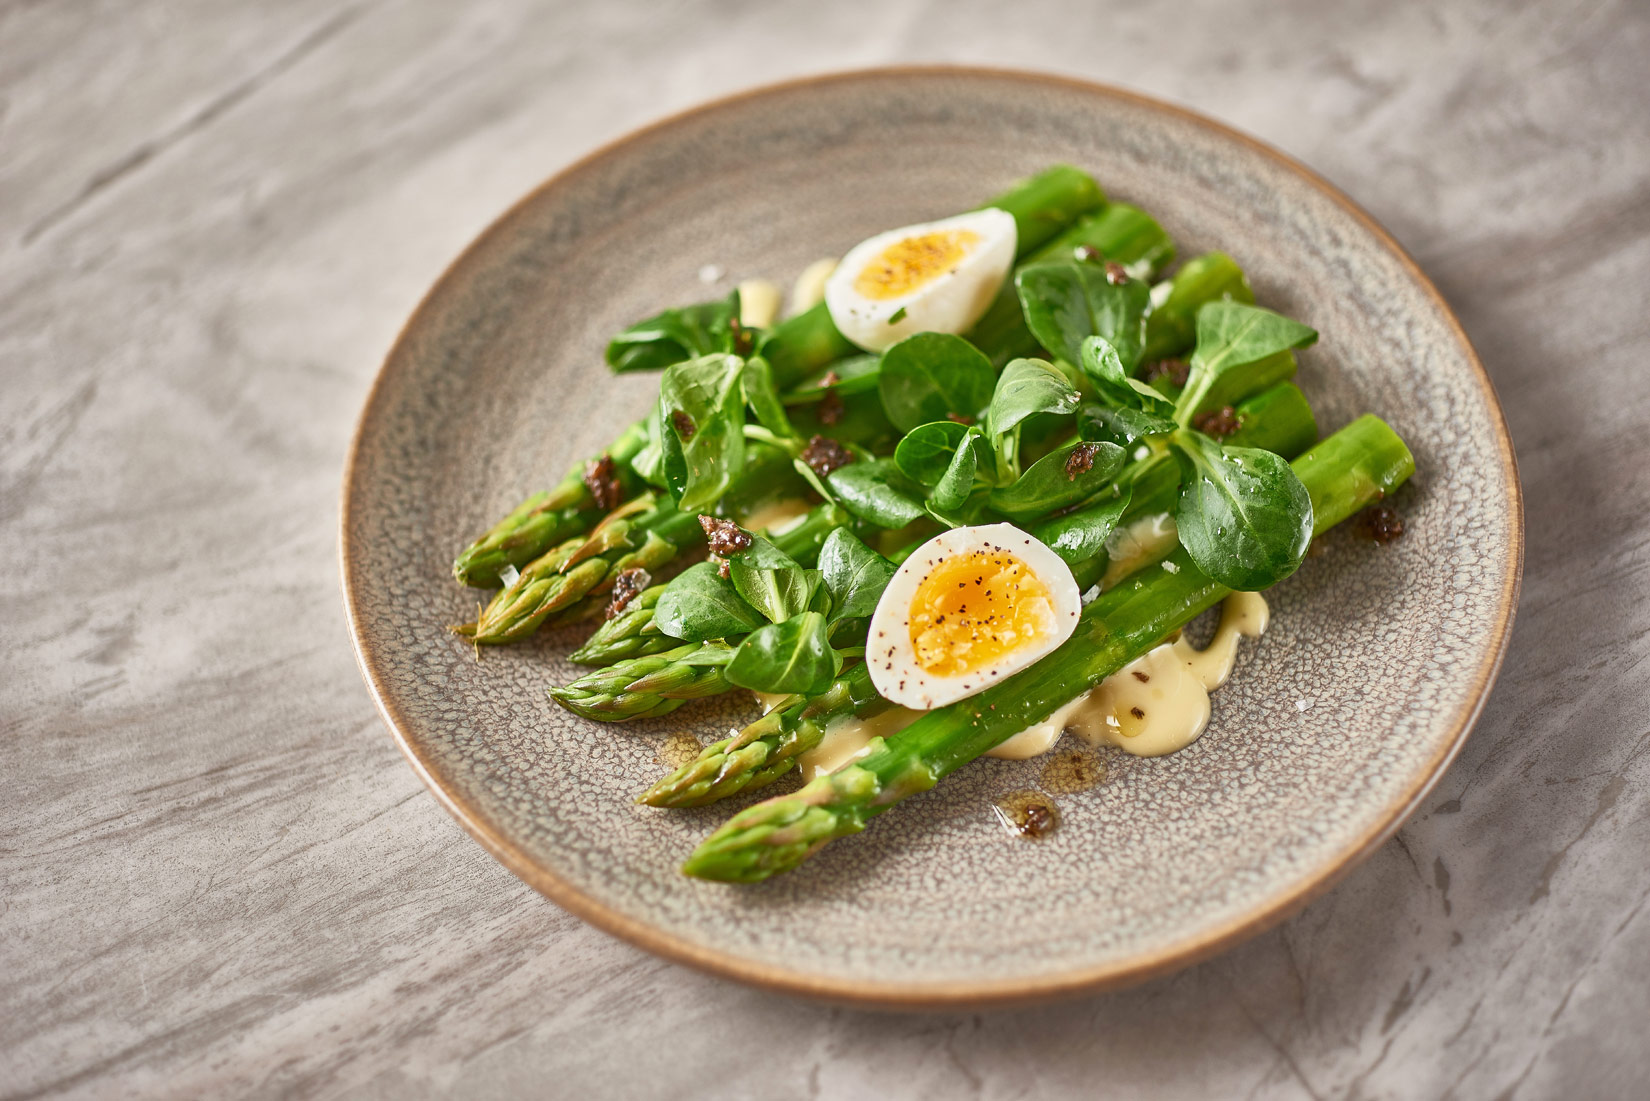 Asparagus with sliced pheasant egg at Toms Kitchen in Chelsea